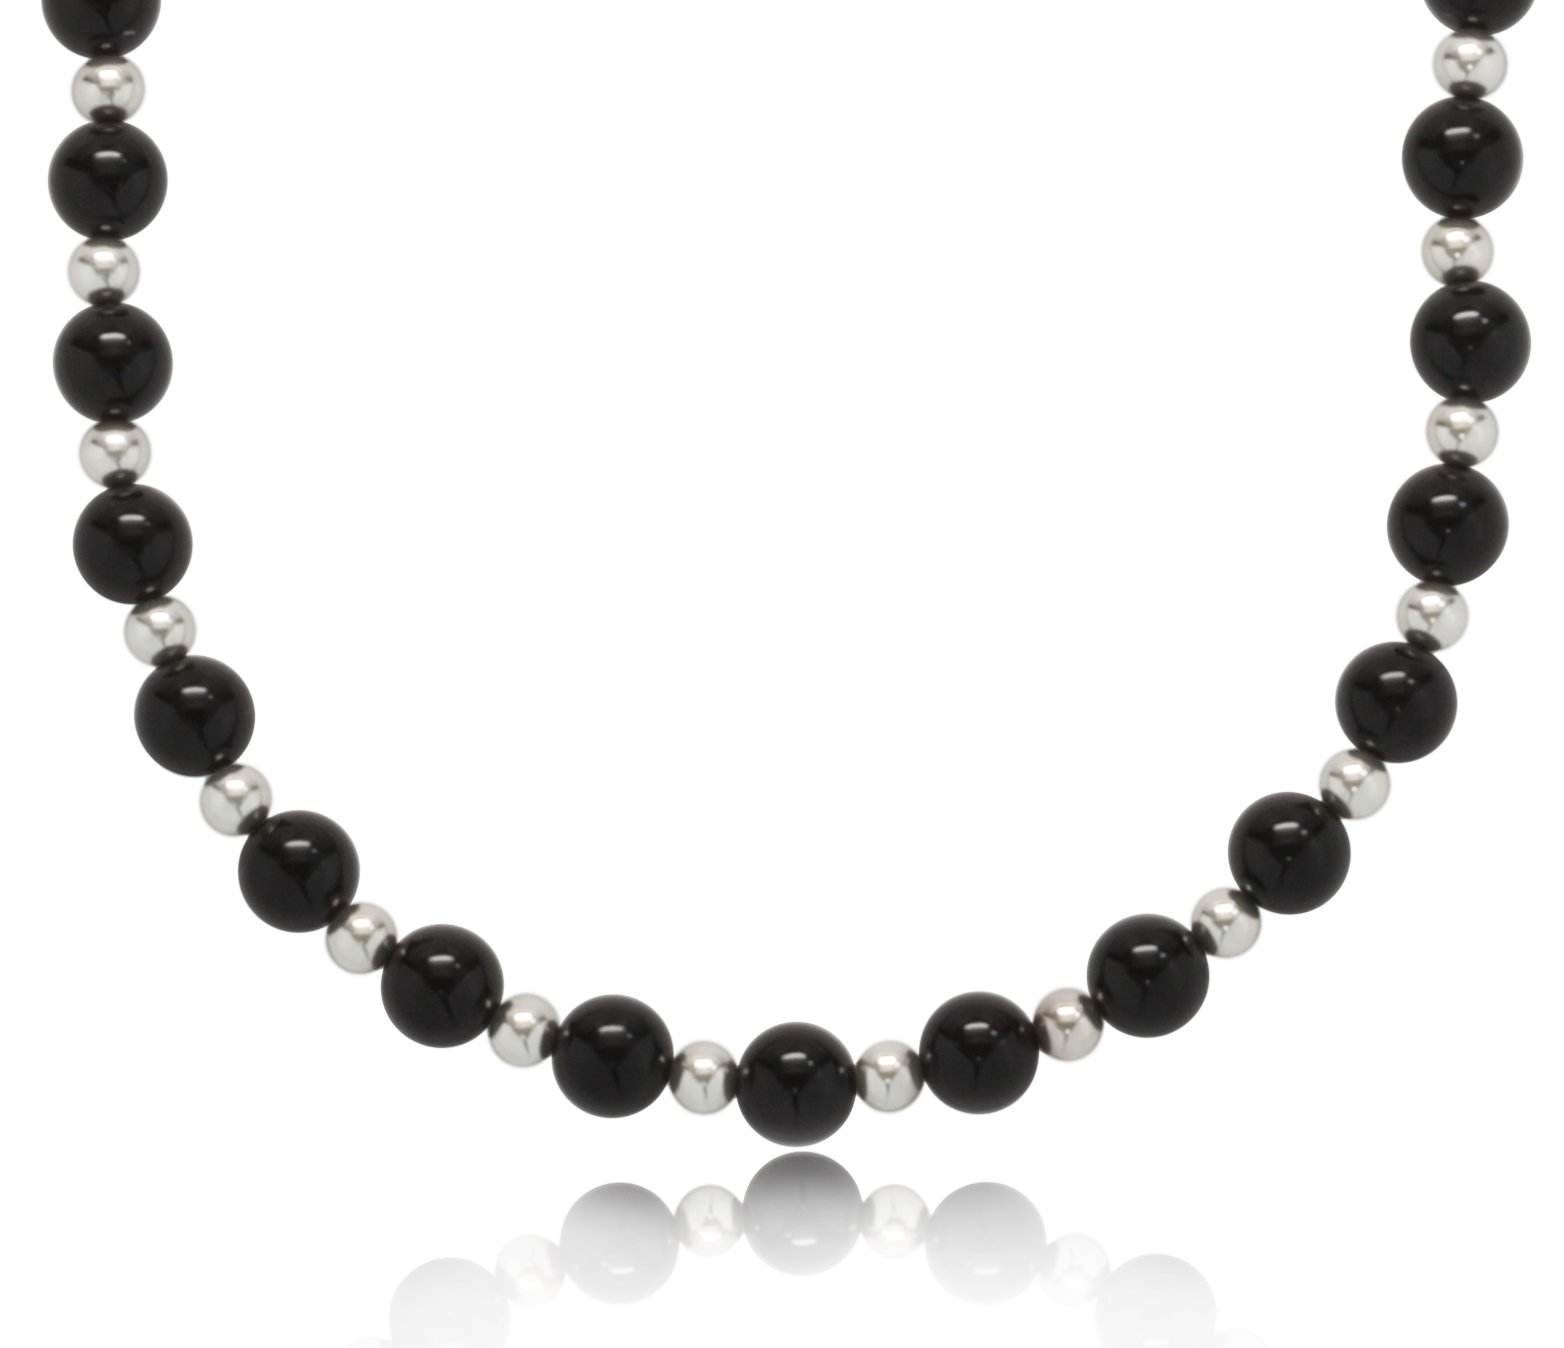 ISAAC WESTMAN 8mm Polished Black Onyx Endless Necklace with .925 Sterling Silver Beads, 32''